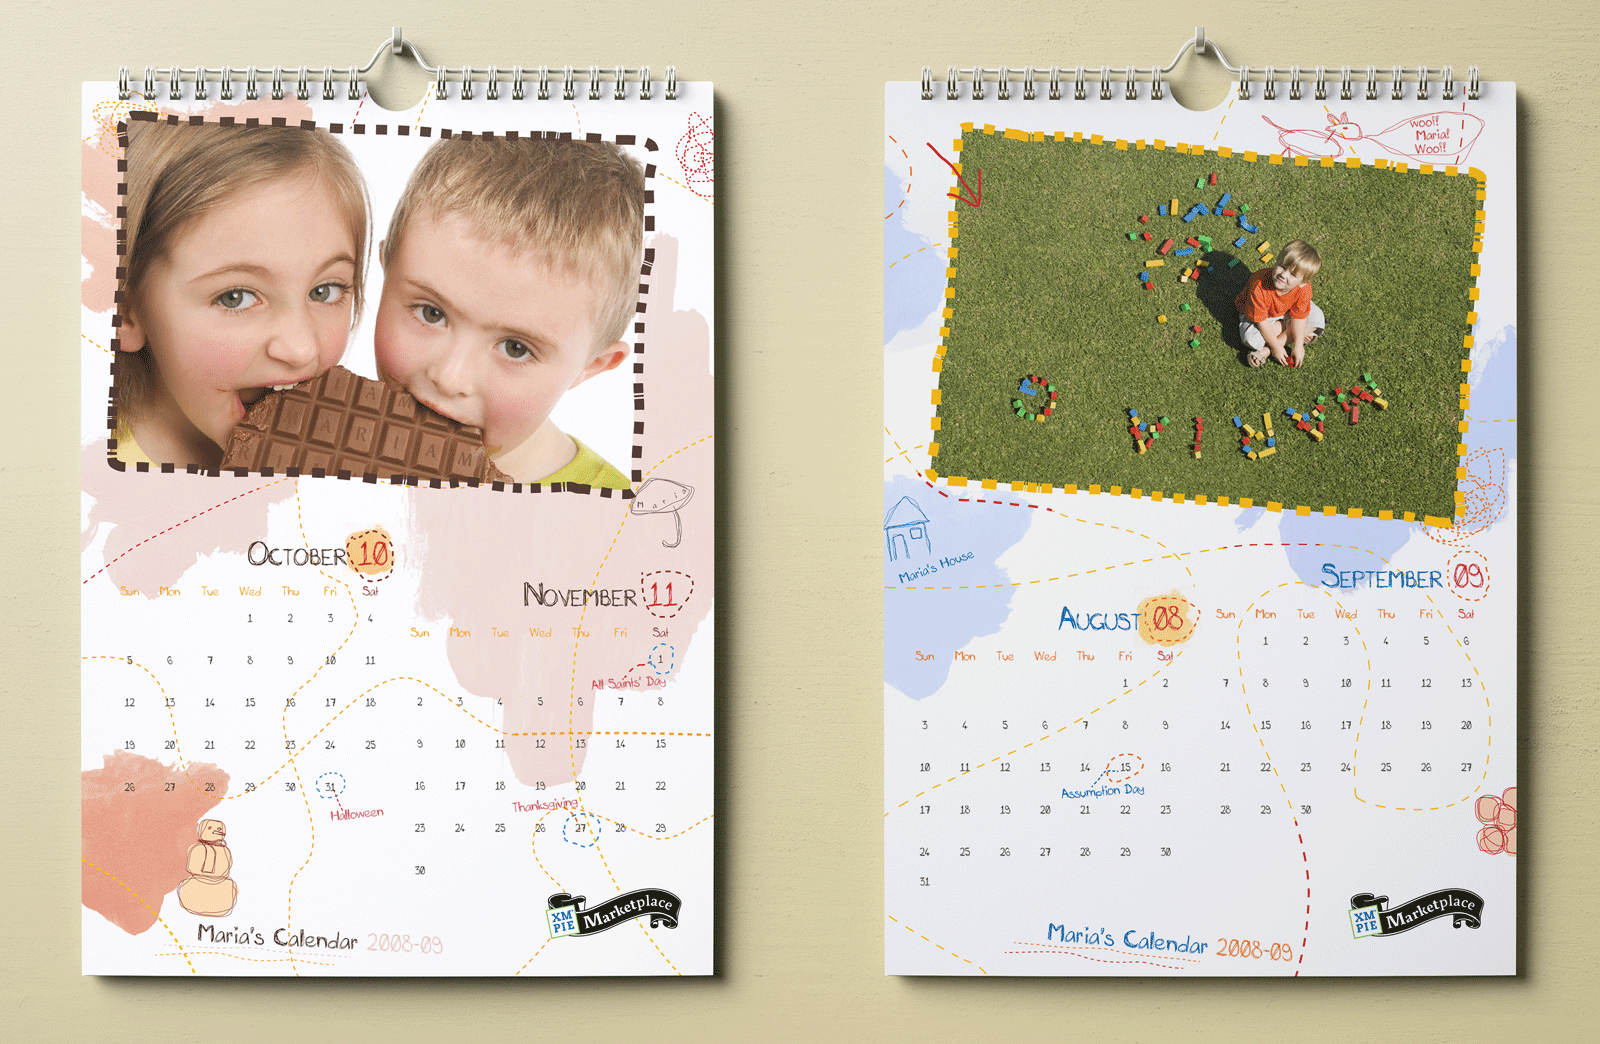 http://bigeyes.co.il/wp-content/uploads/2019/07/kids-calendar-2.png